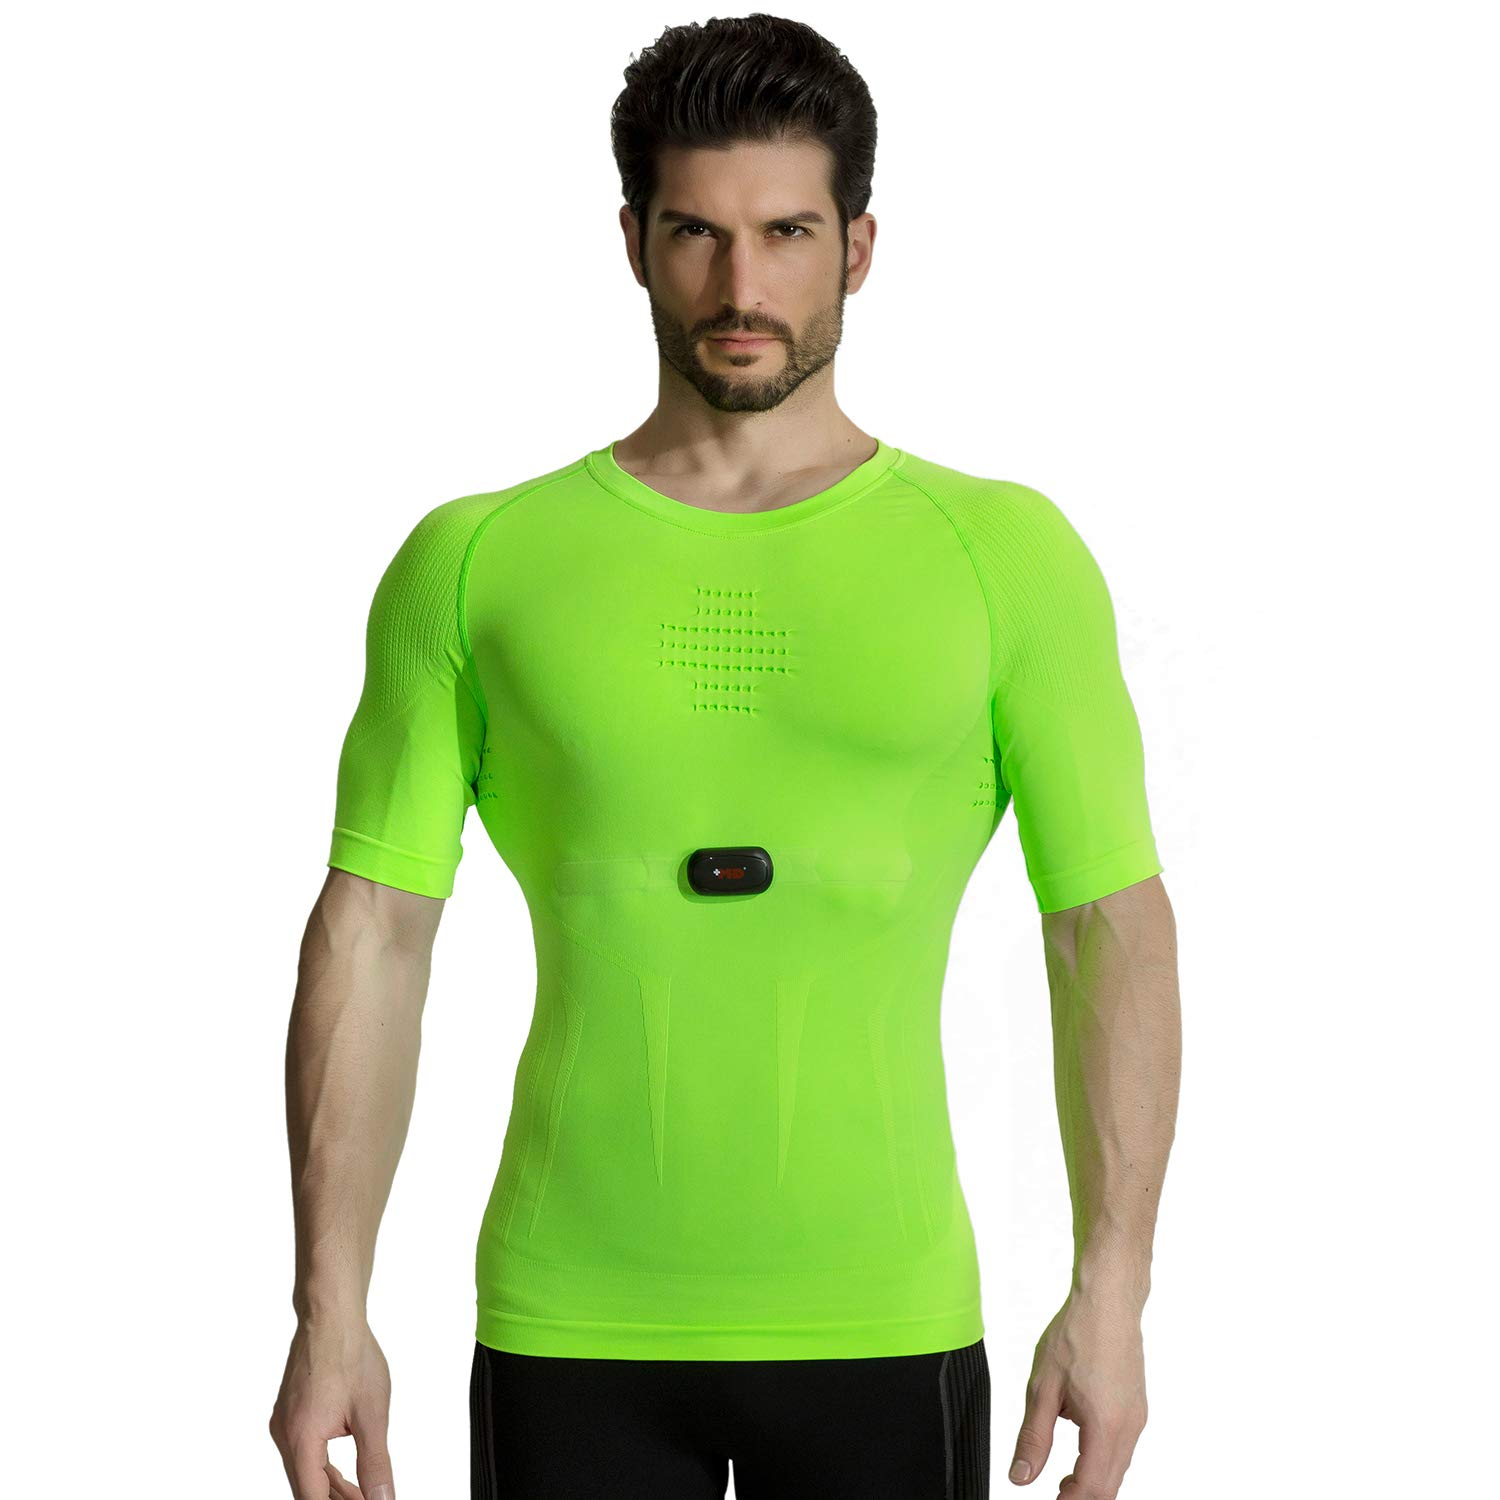 +MD Men's Cool Dry Compression Shirt Base Layer Short Sleeve T-Shirt with Heart Rate Monitor Chest Strap